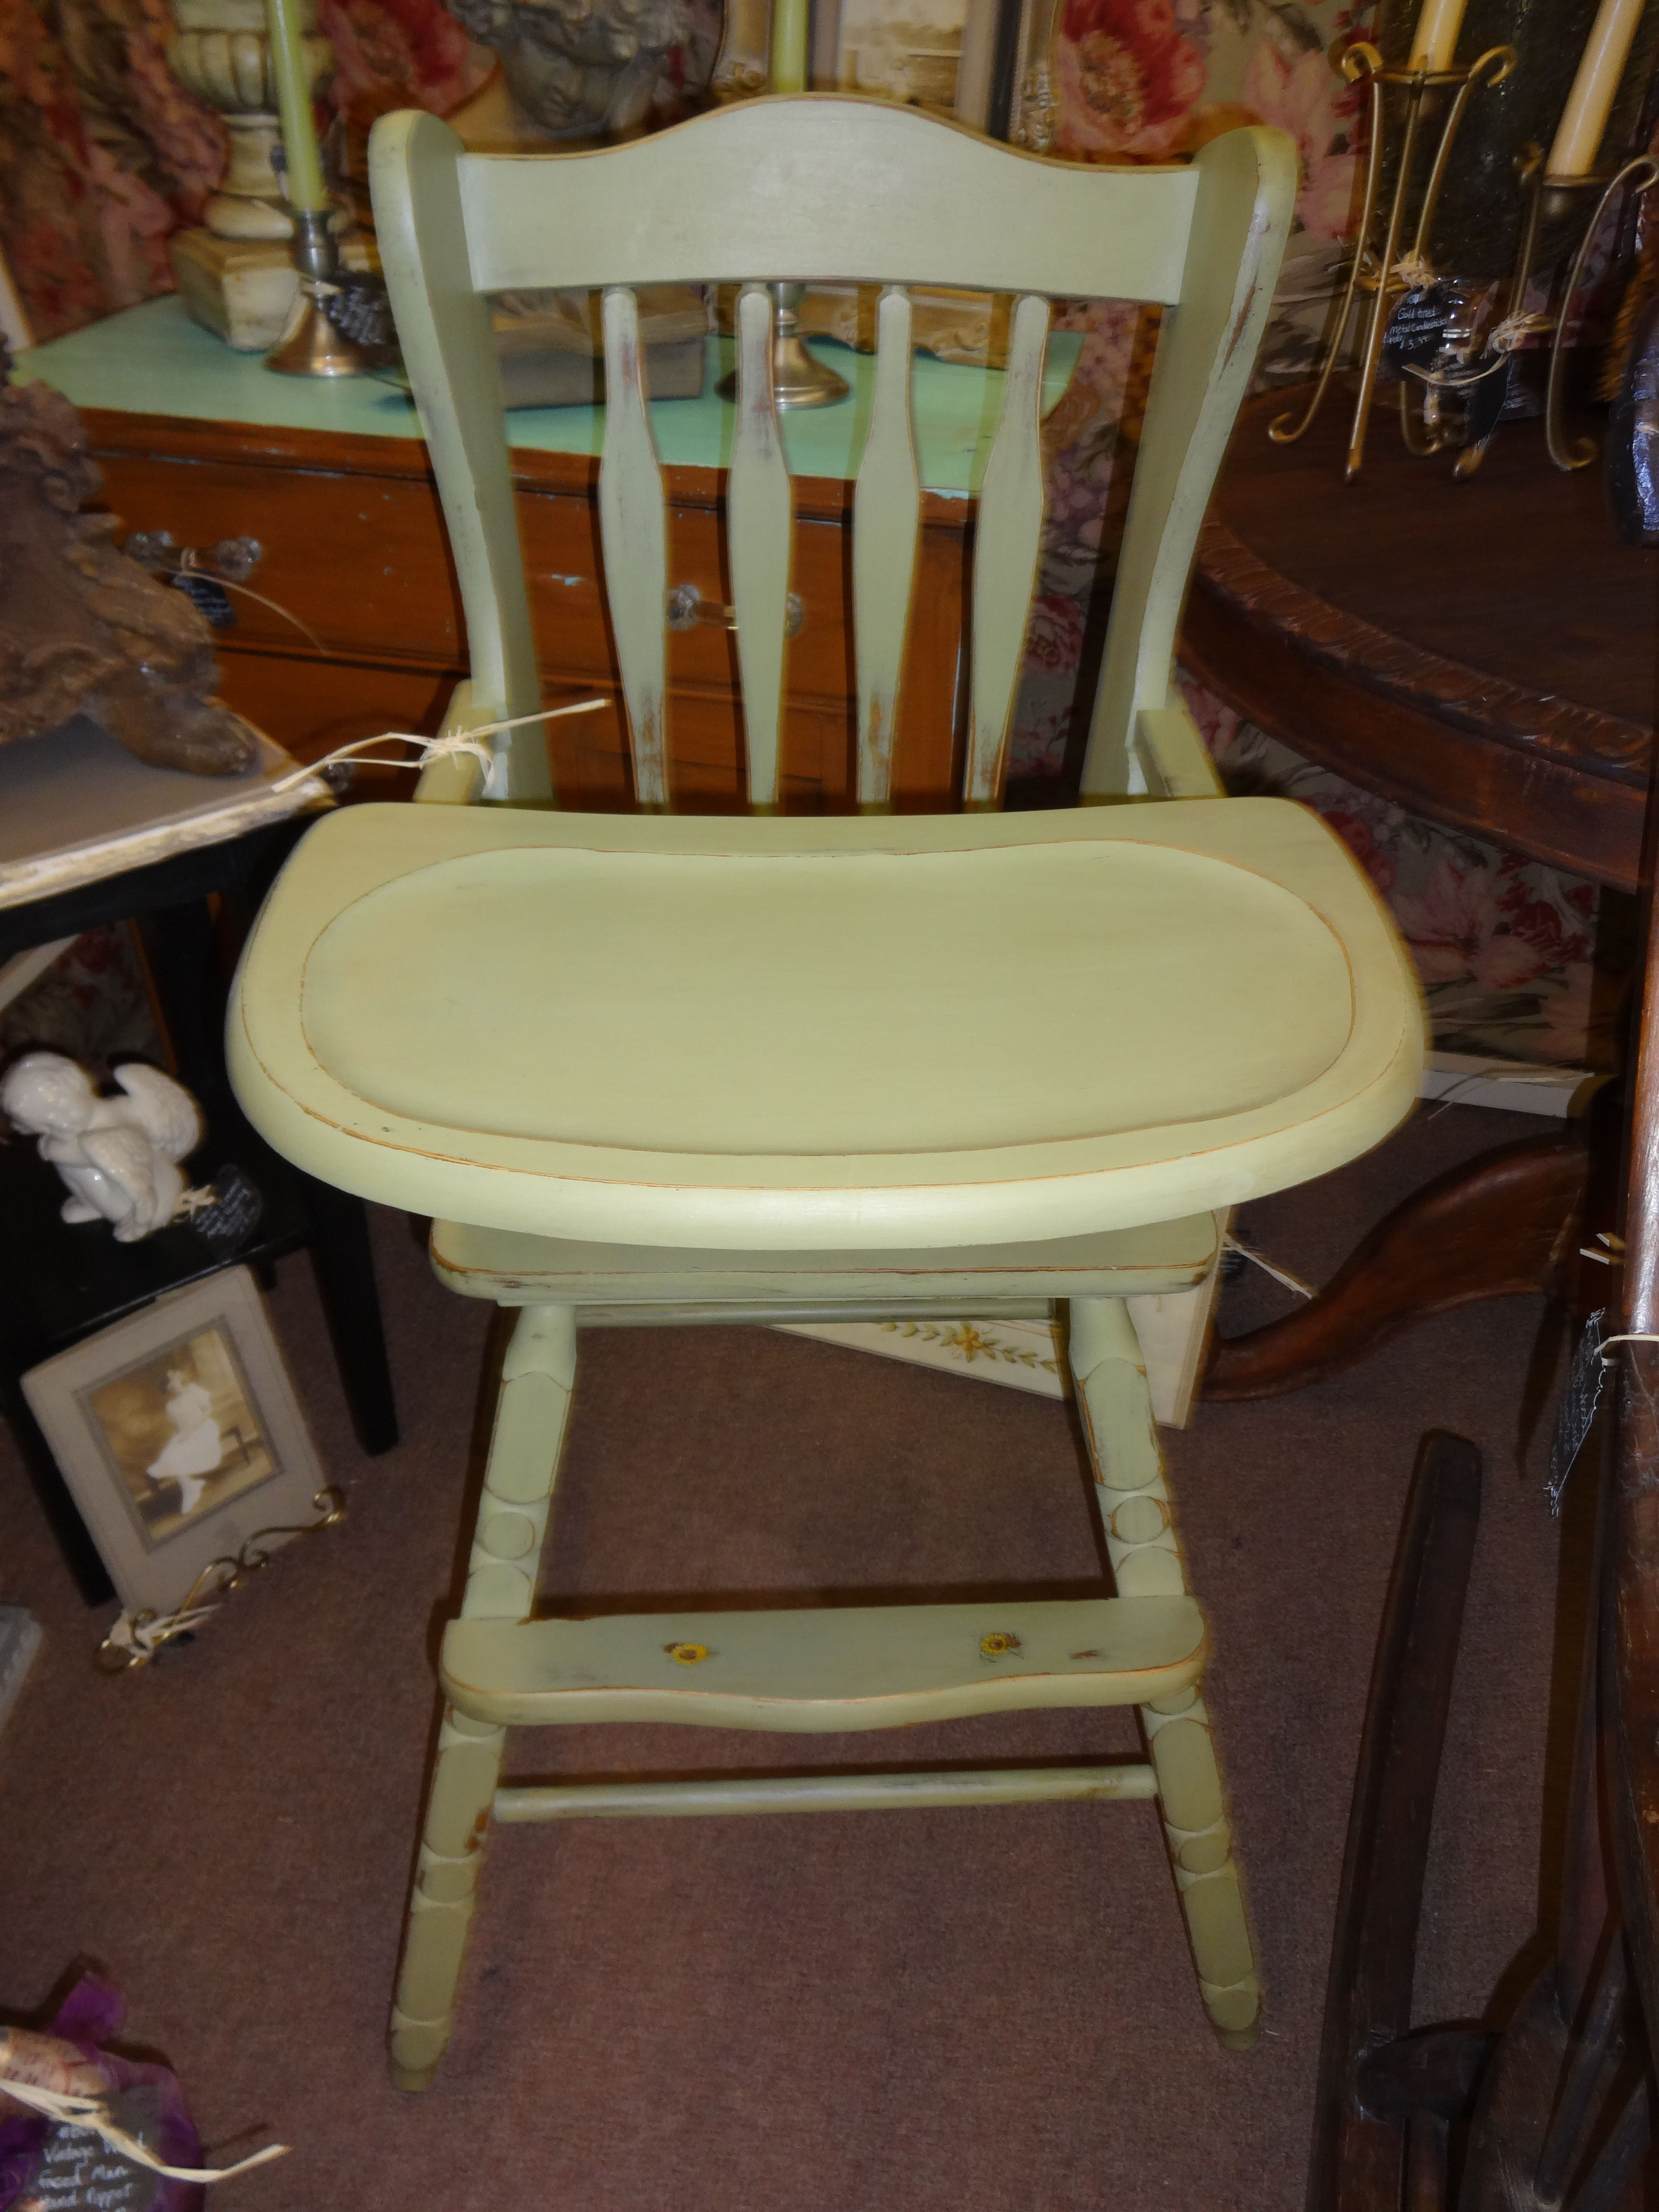 Sold this old wood highchair has the tray and has been painted